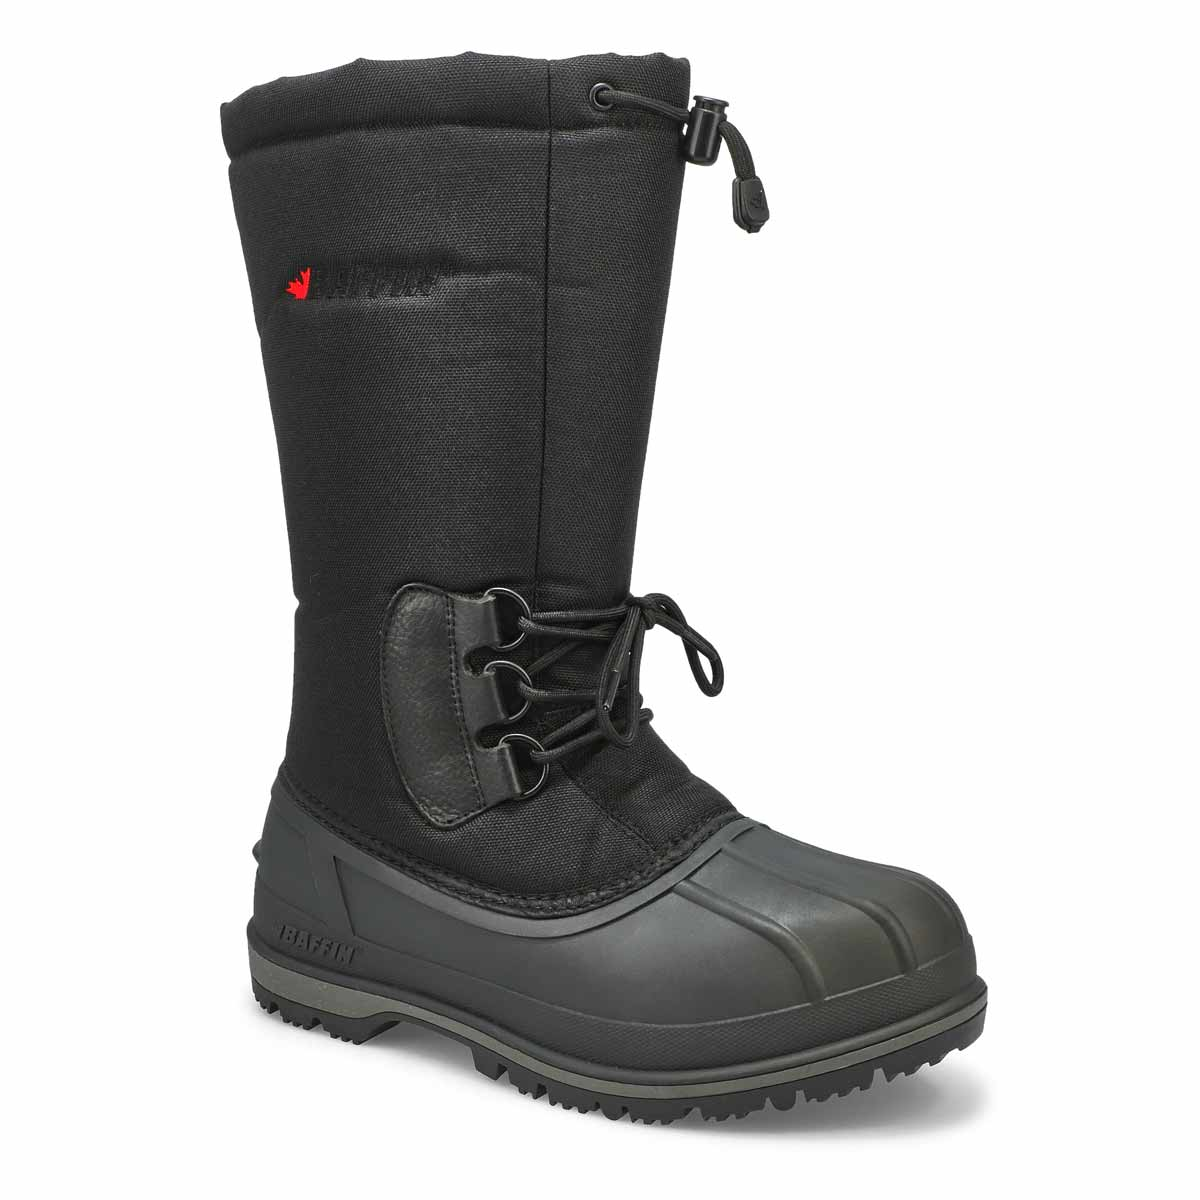 Mns Klondike blk wtpf tall winter boot